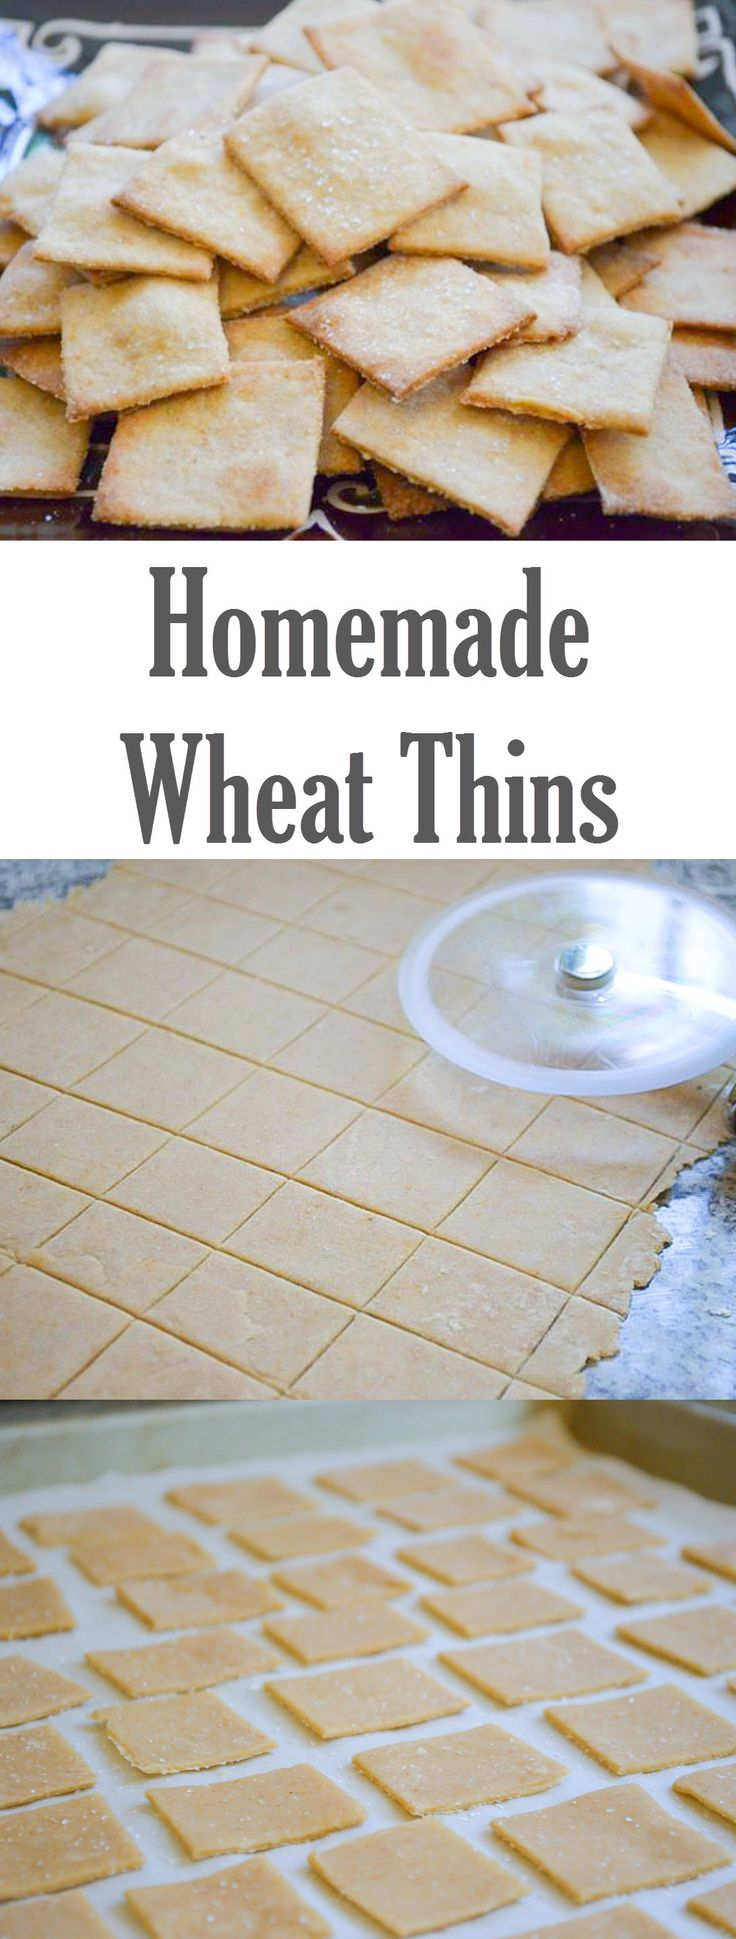 17 Best ideas about Wheat Thins on Pinterest | Cracker dip ...